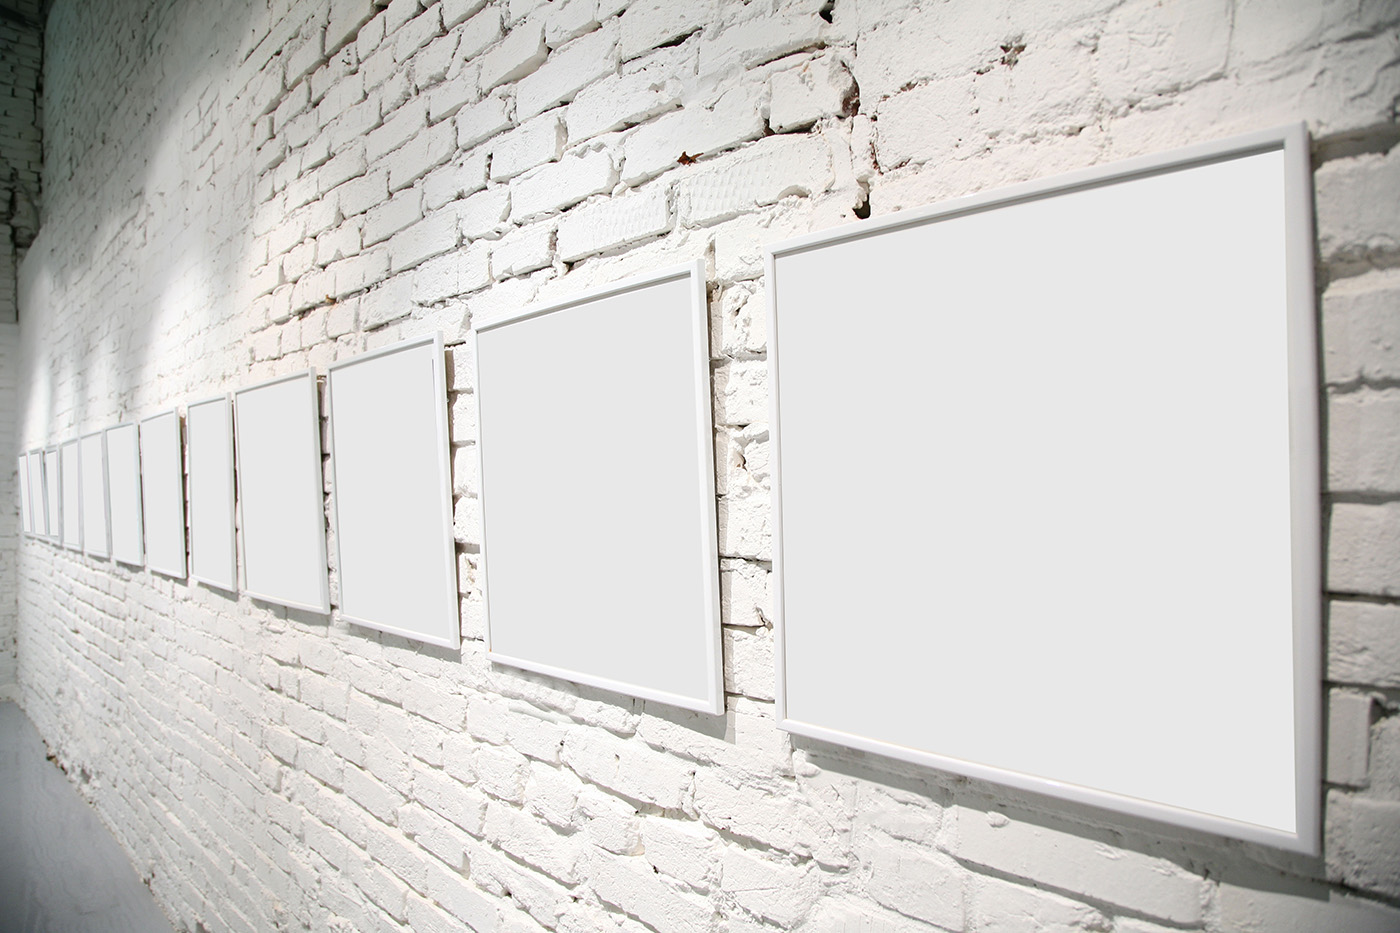 Blank picture frame hanging on the wall of lime 50428